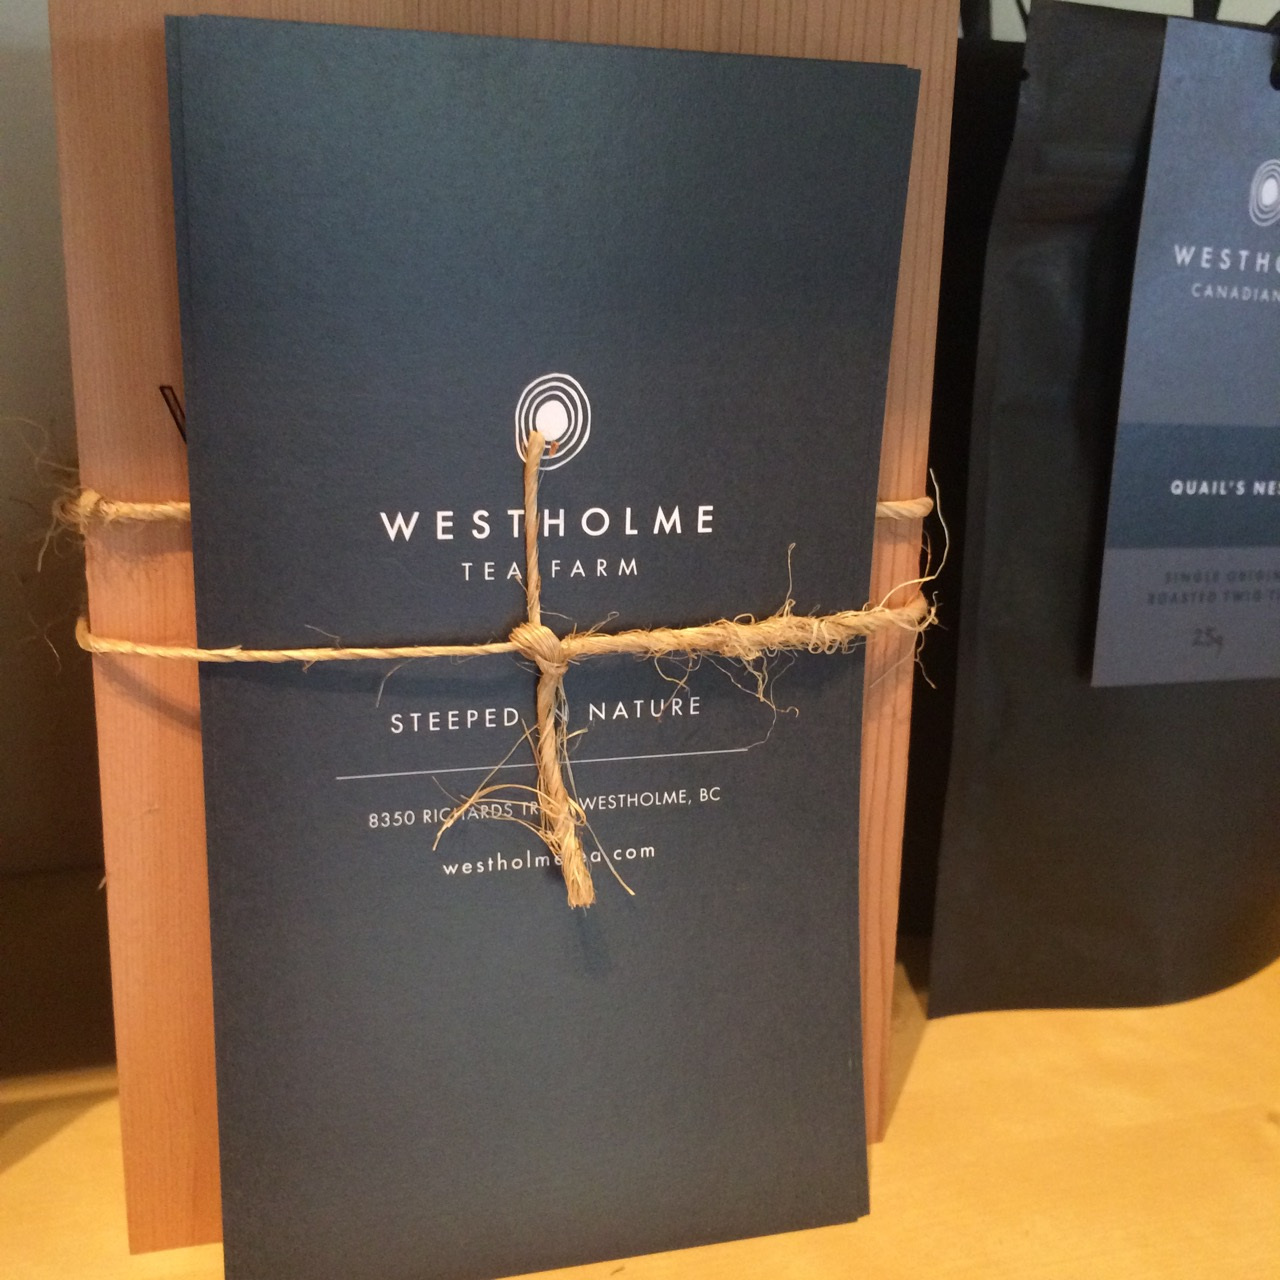 Images courtesy of Westholme Tea Co.